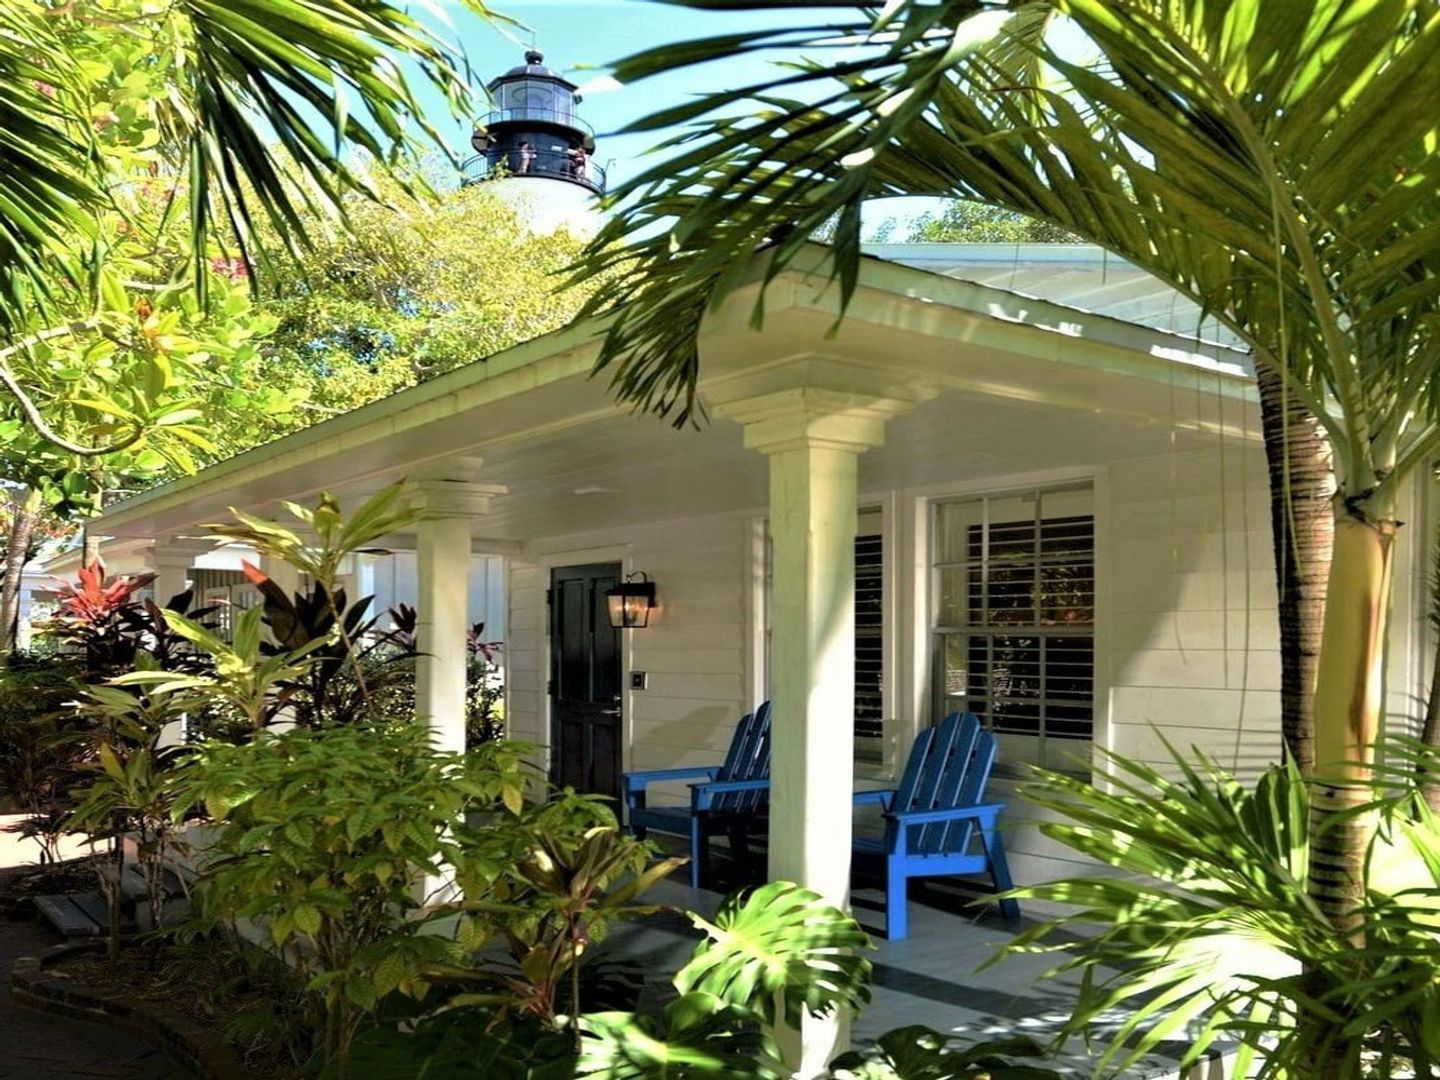 A room filled with furniture and a plant at Authors Key West Guest House.